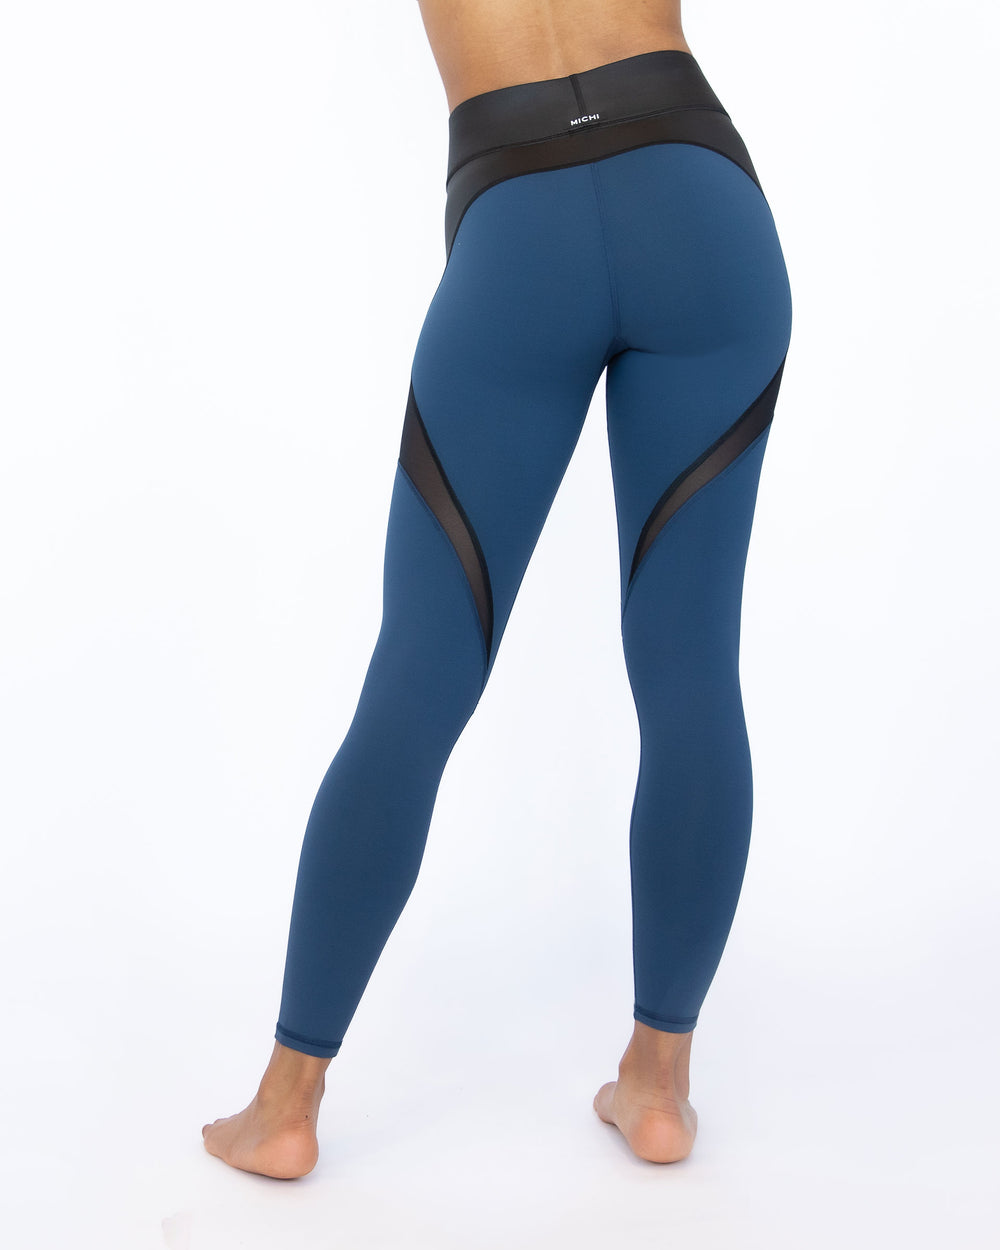 Glow Legging - Ink